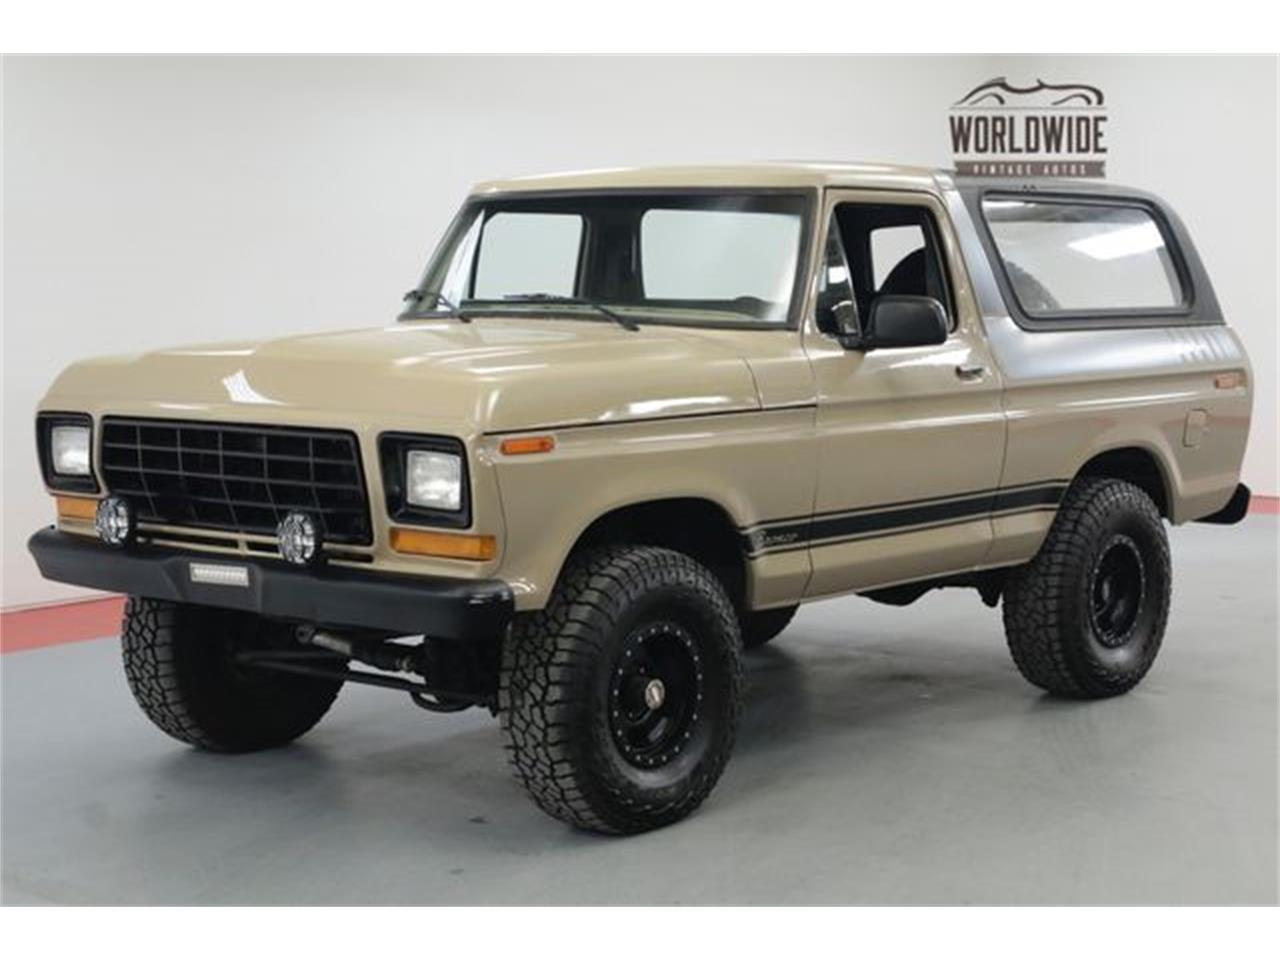 Large picture of 79 bronco namf